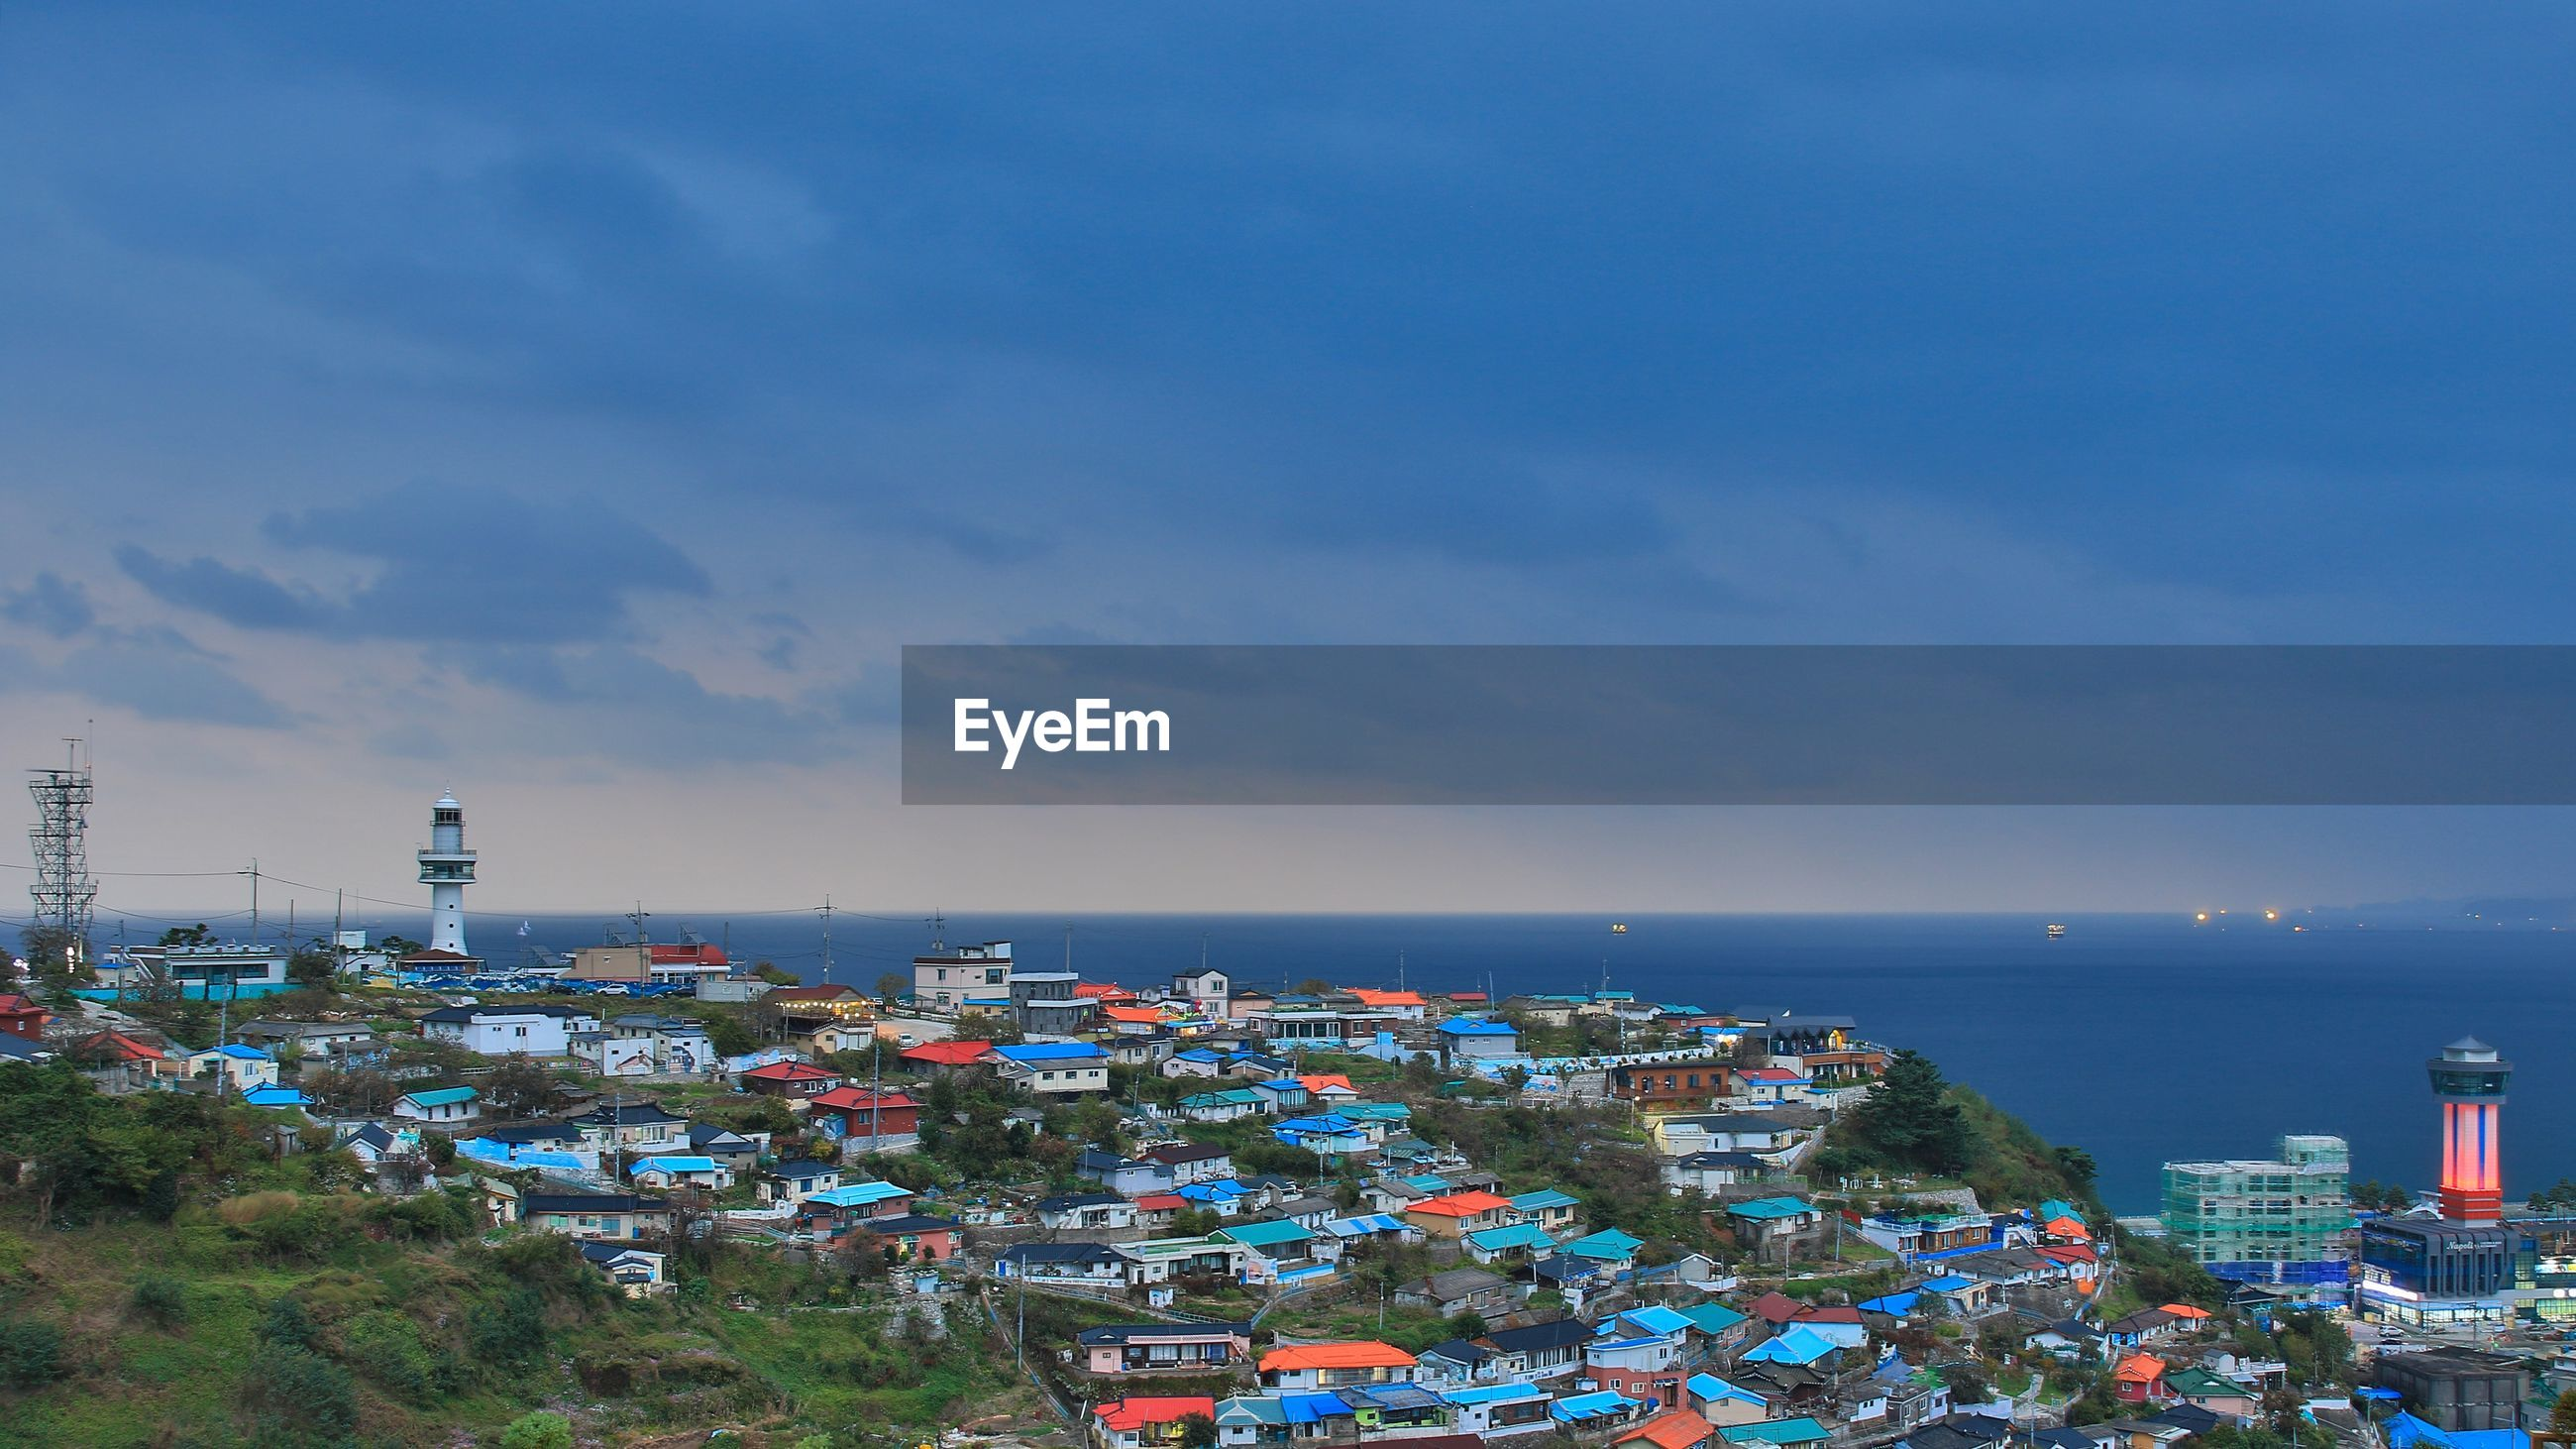 This is the evening view of the hill village where you can see the open great sea.